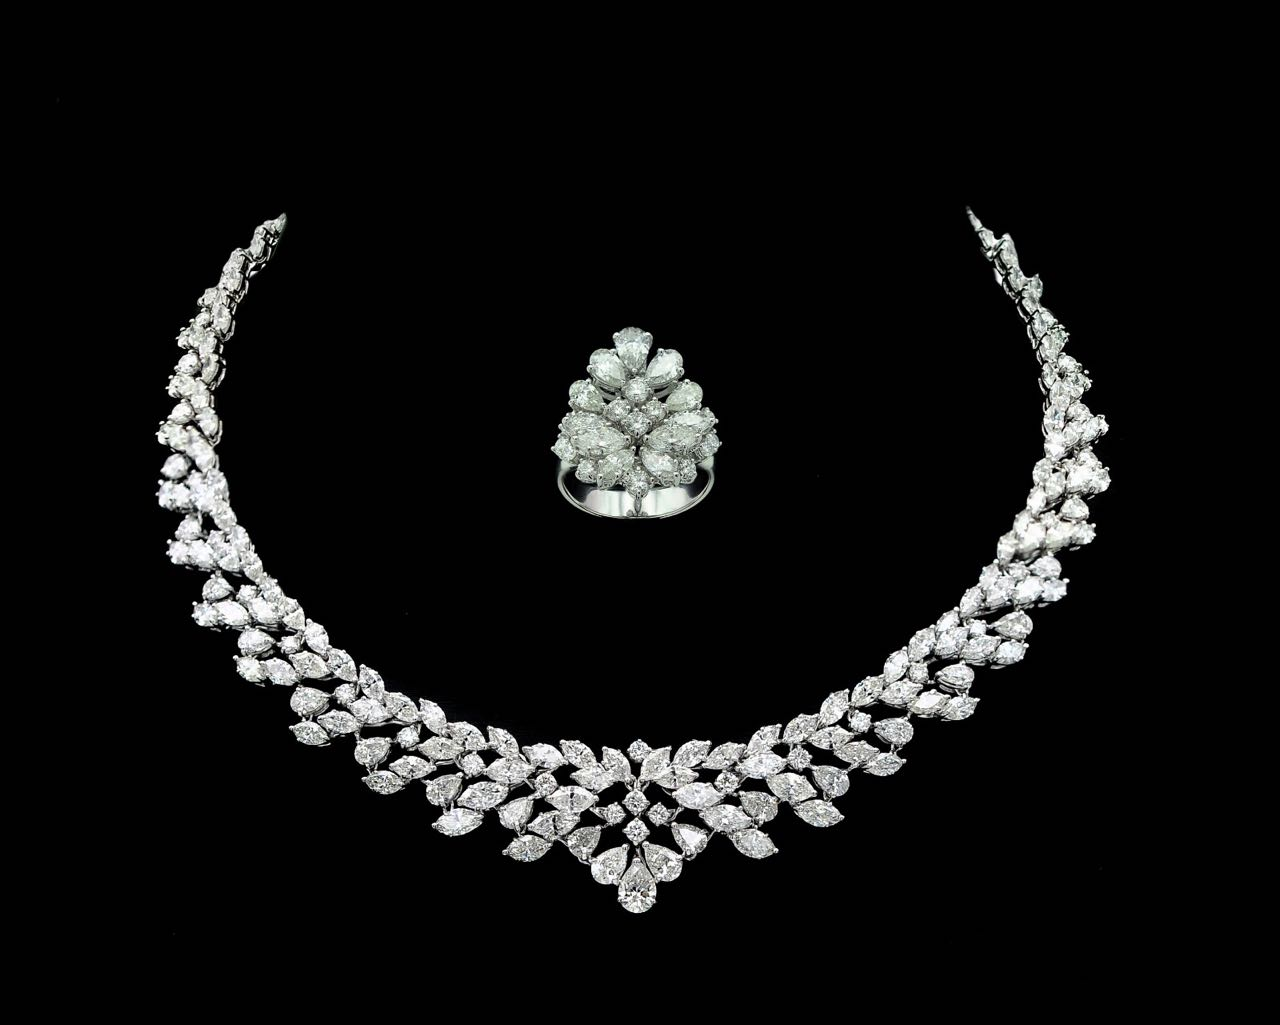 Diamond necklac and ring set